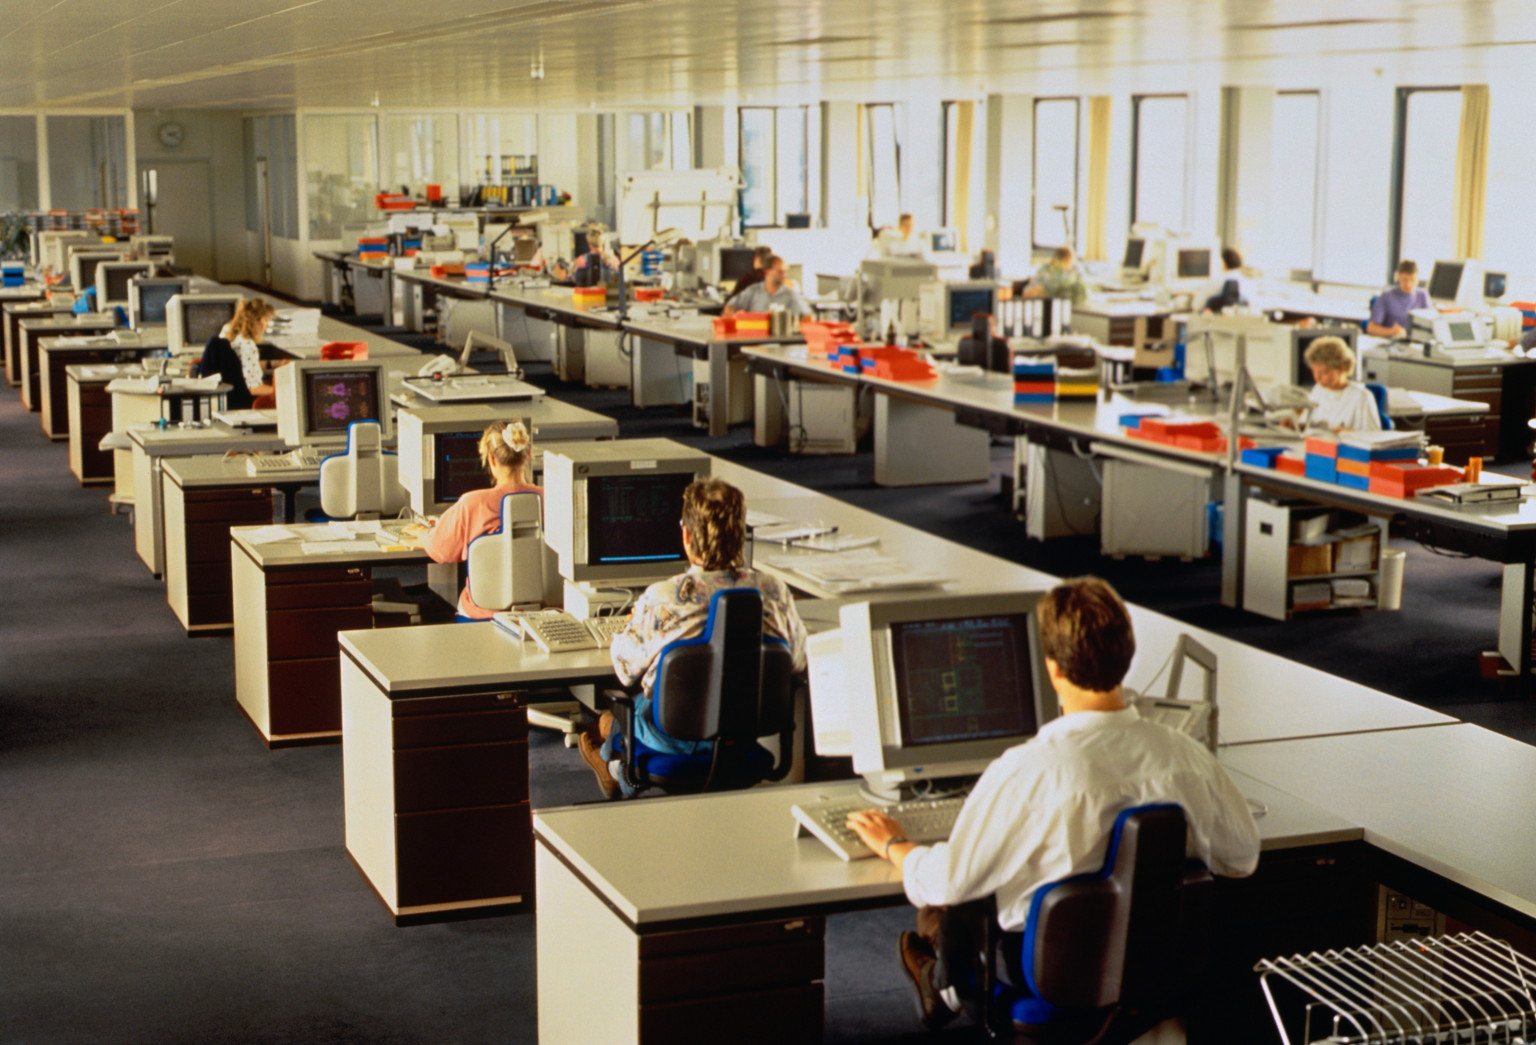 Open Plan Offices Detrimental To Worker Productivity